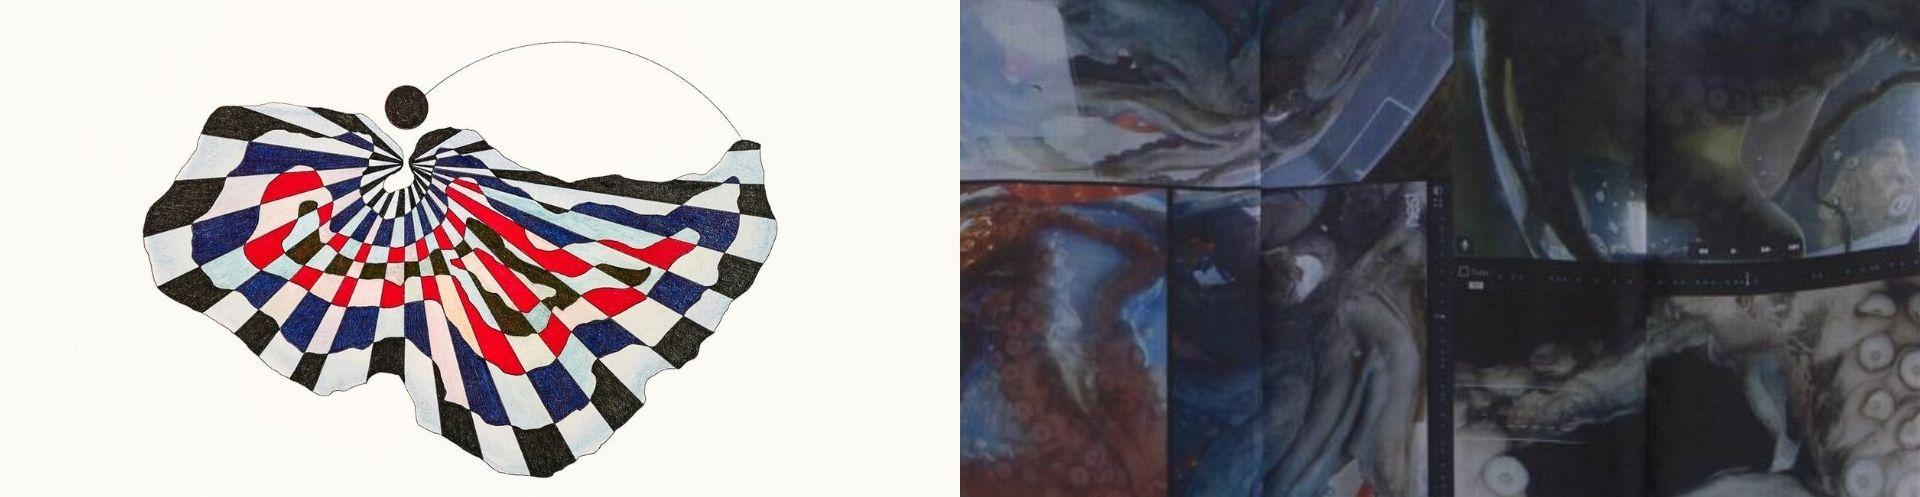 Two new exhibitions now open